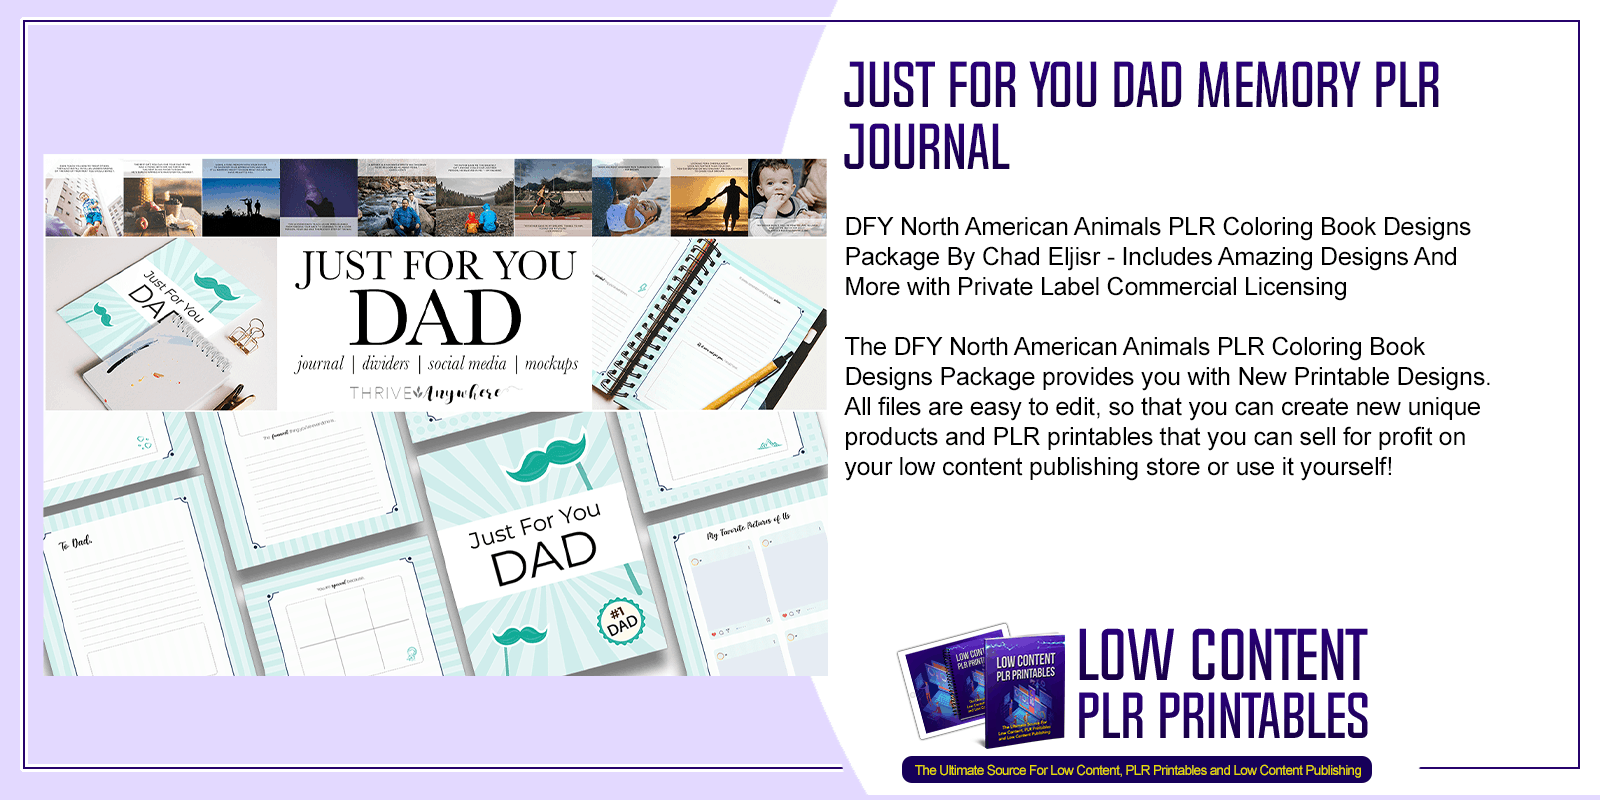 Just For You Dad Memory PLR Journal